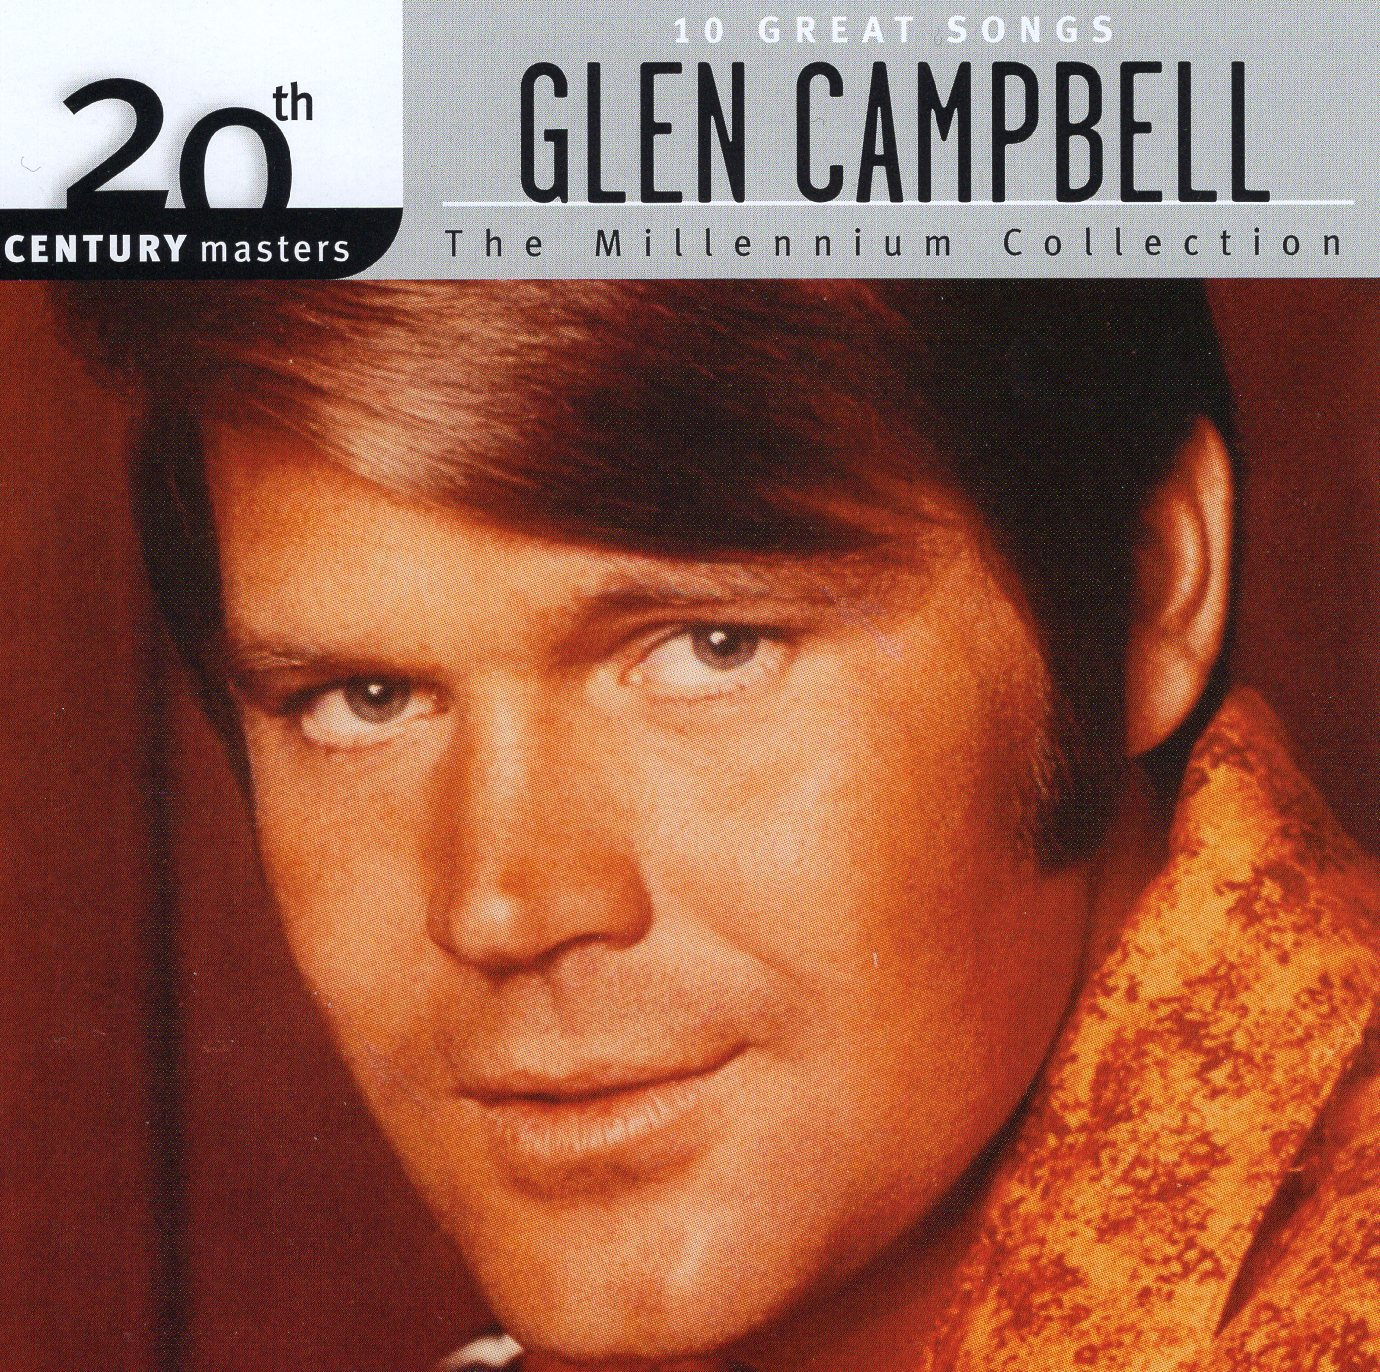 """20th Century Masters Glen Campbell"" Glen Campbell"